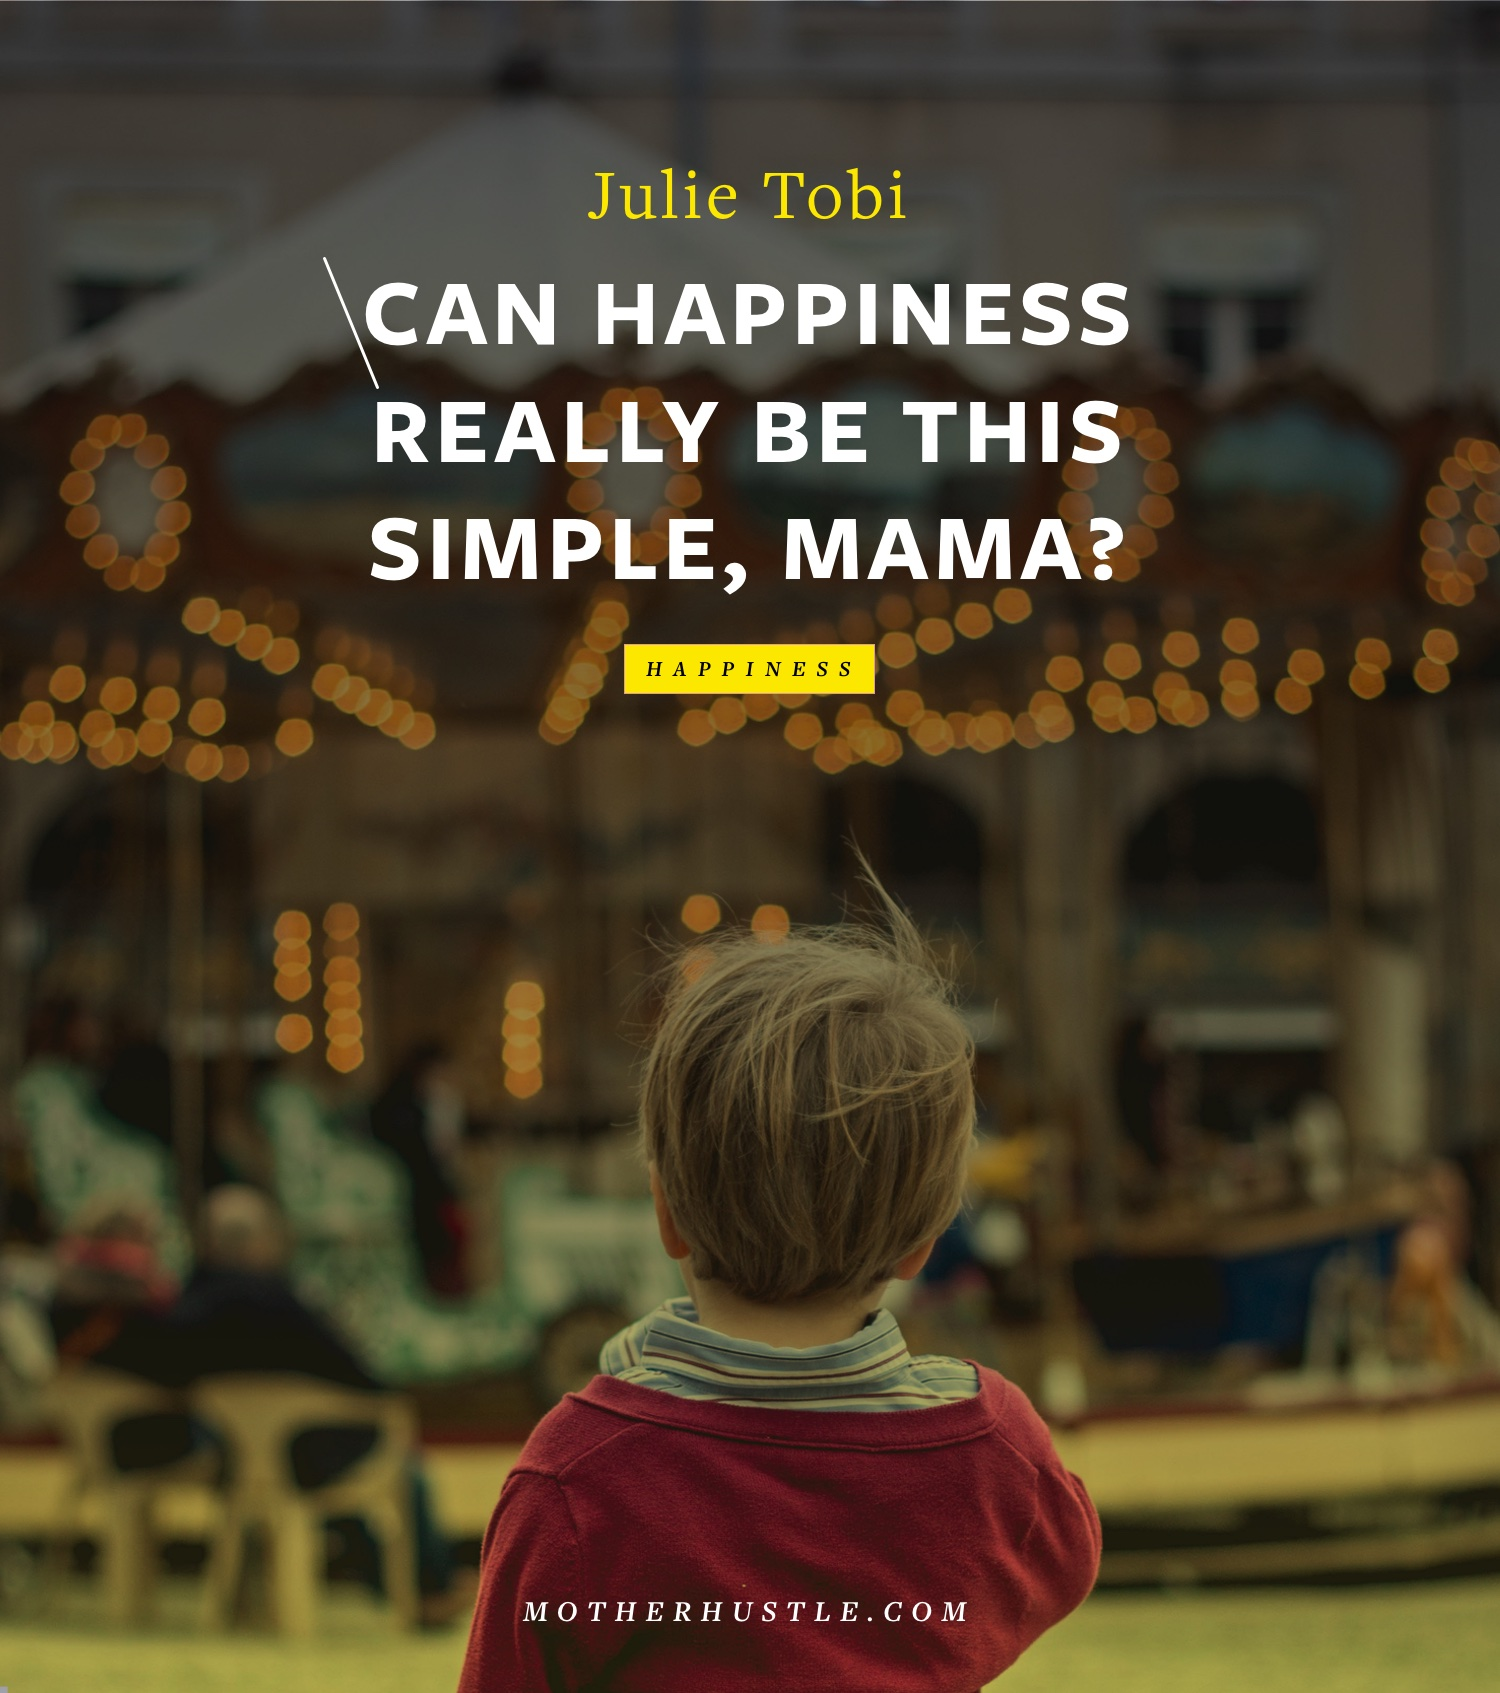 Can Happiness Really Be This Simple, Mama? - by Julie Tobi for MotherHustle